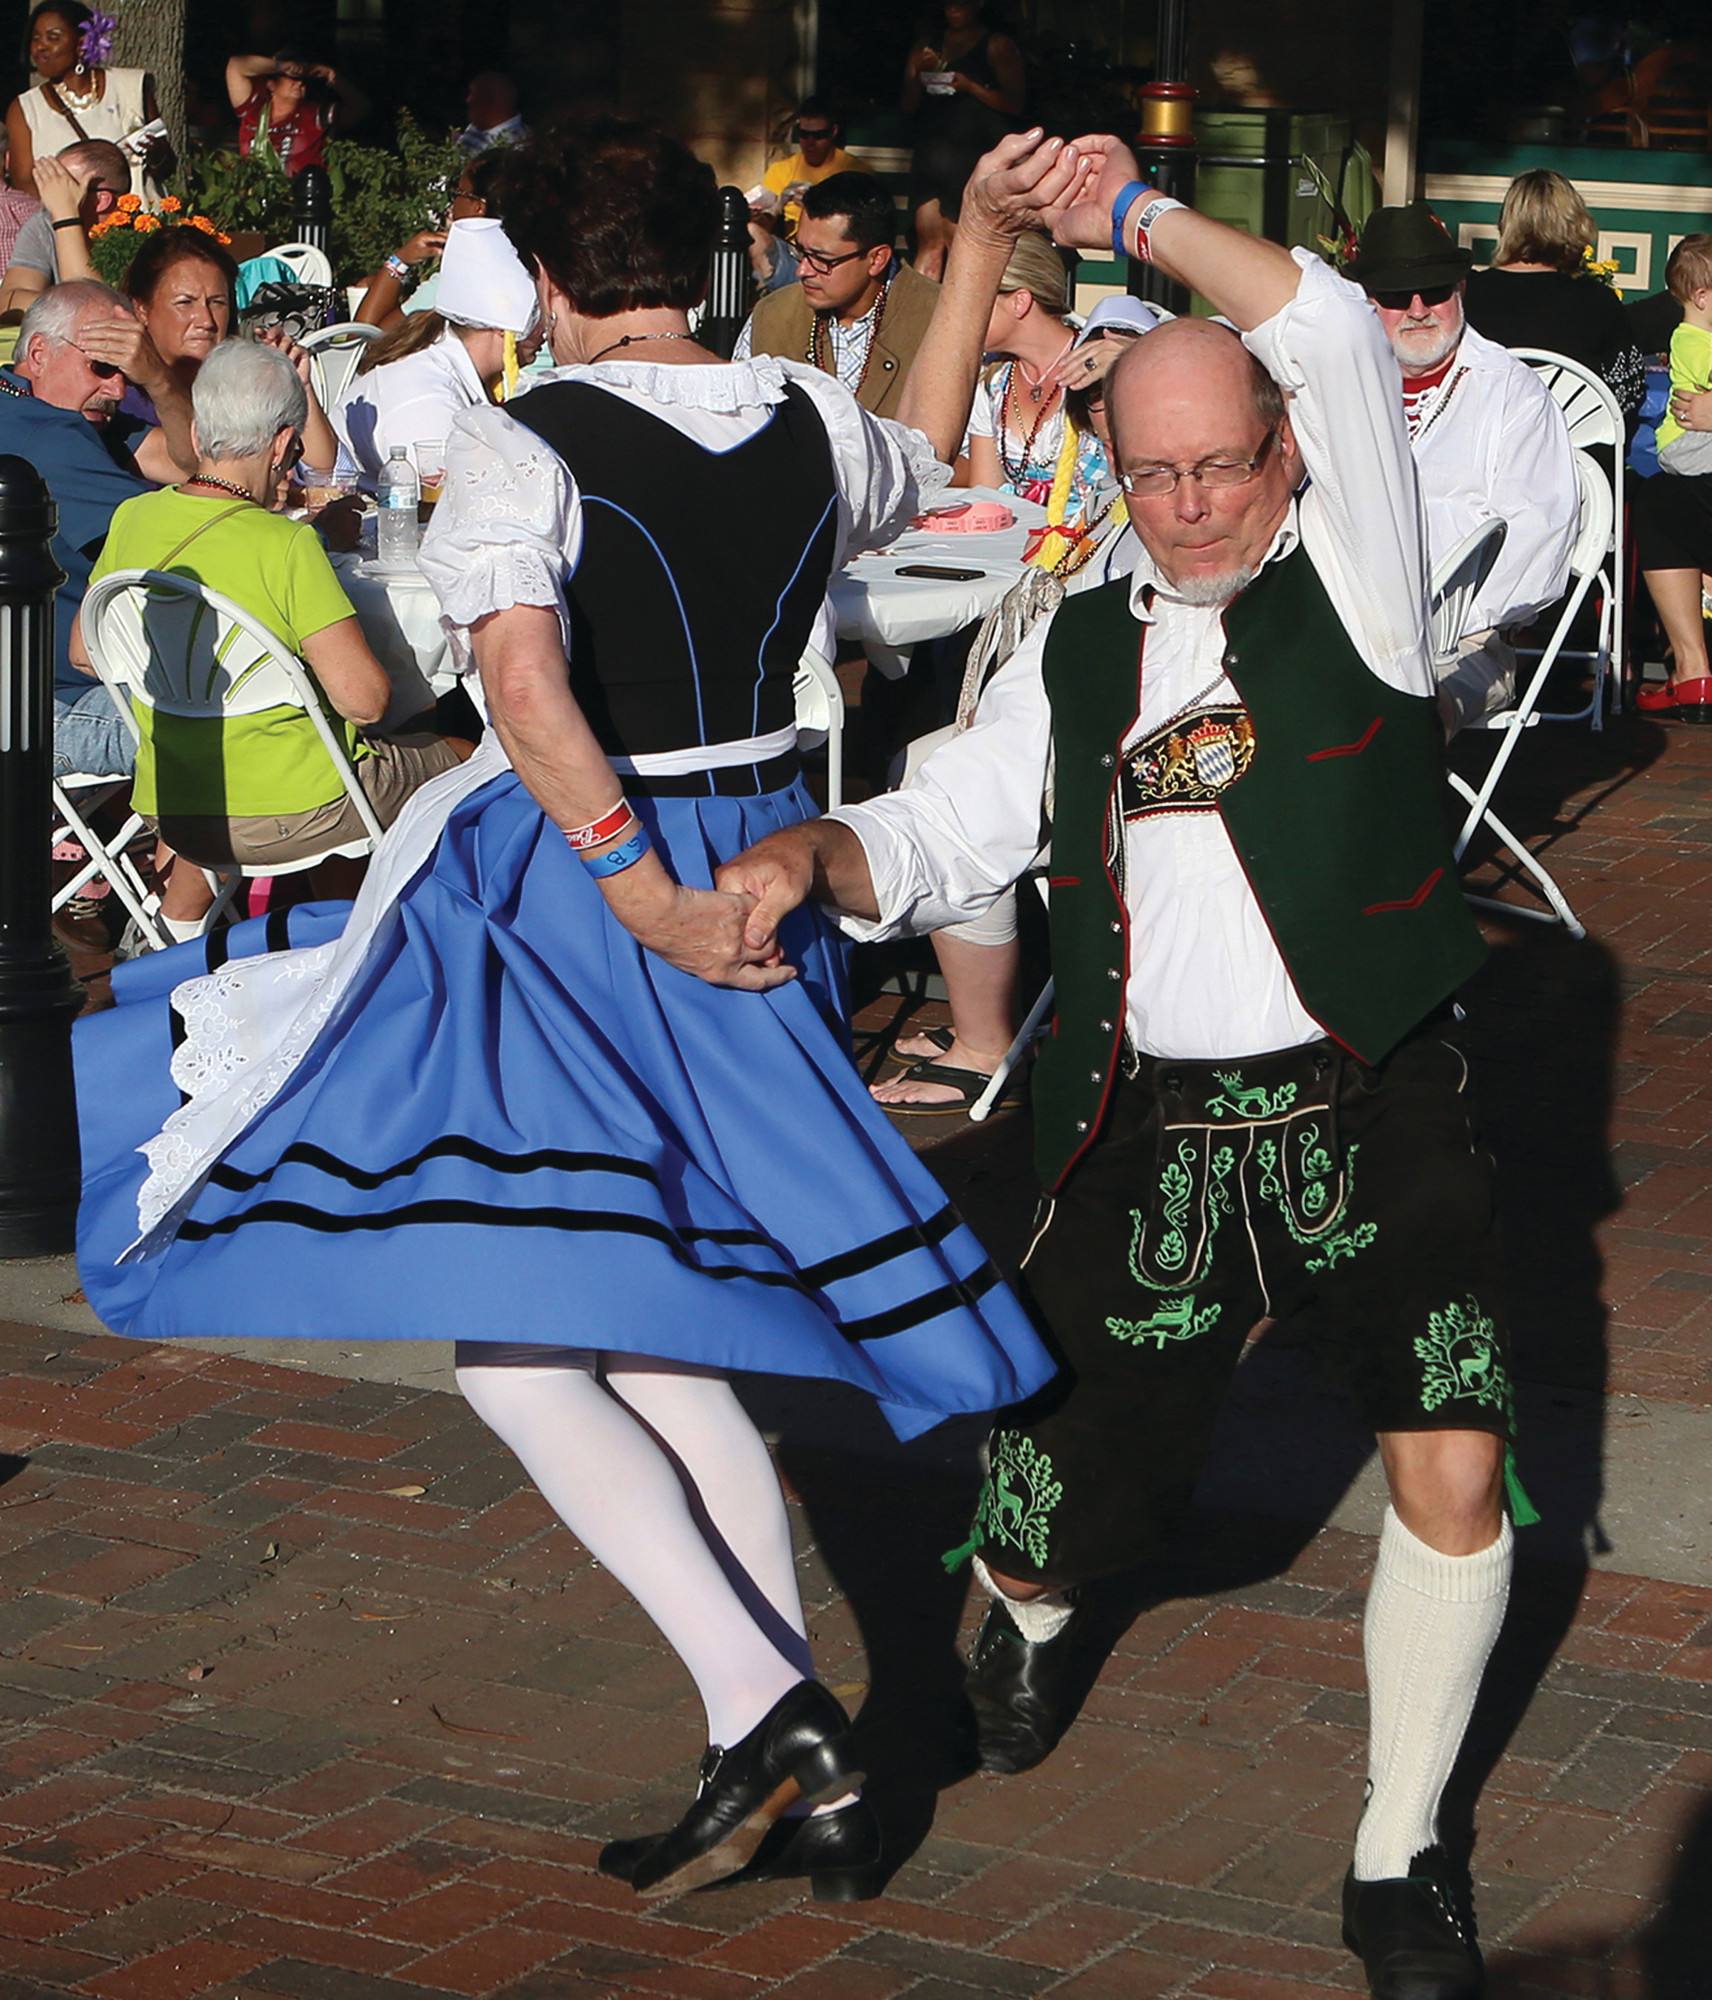 German costumes seem to add to the fun of German dancing during a past Oktoberfest on Sumter's Main Street.